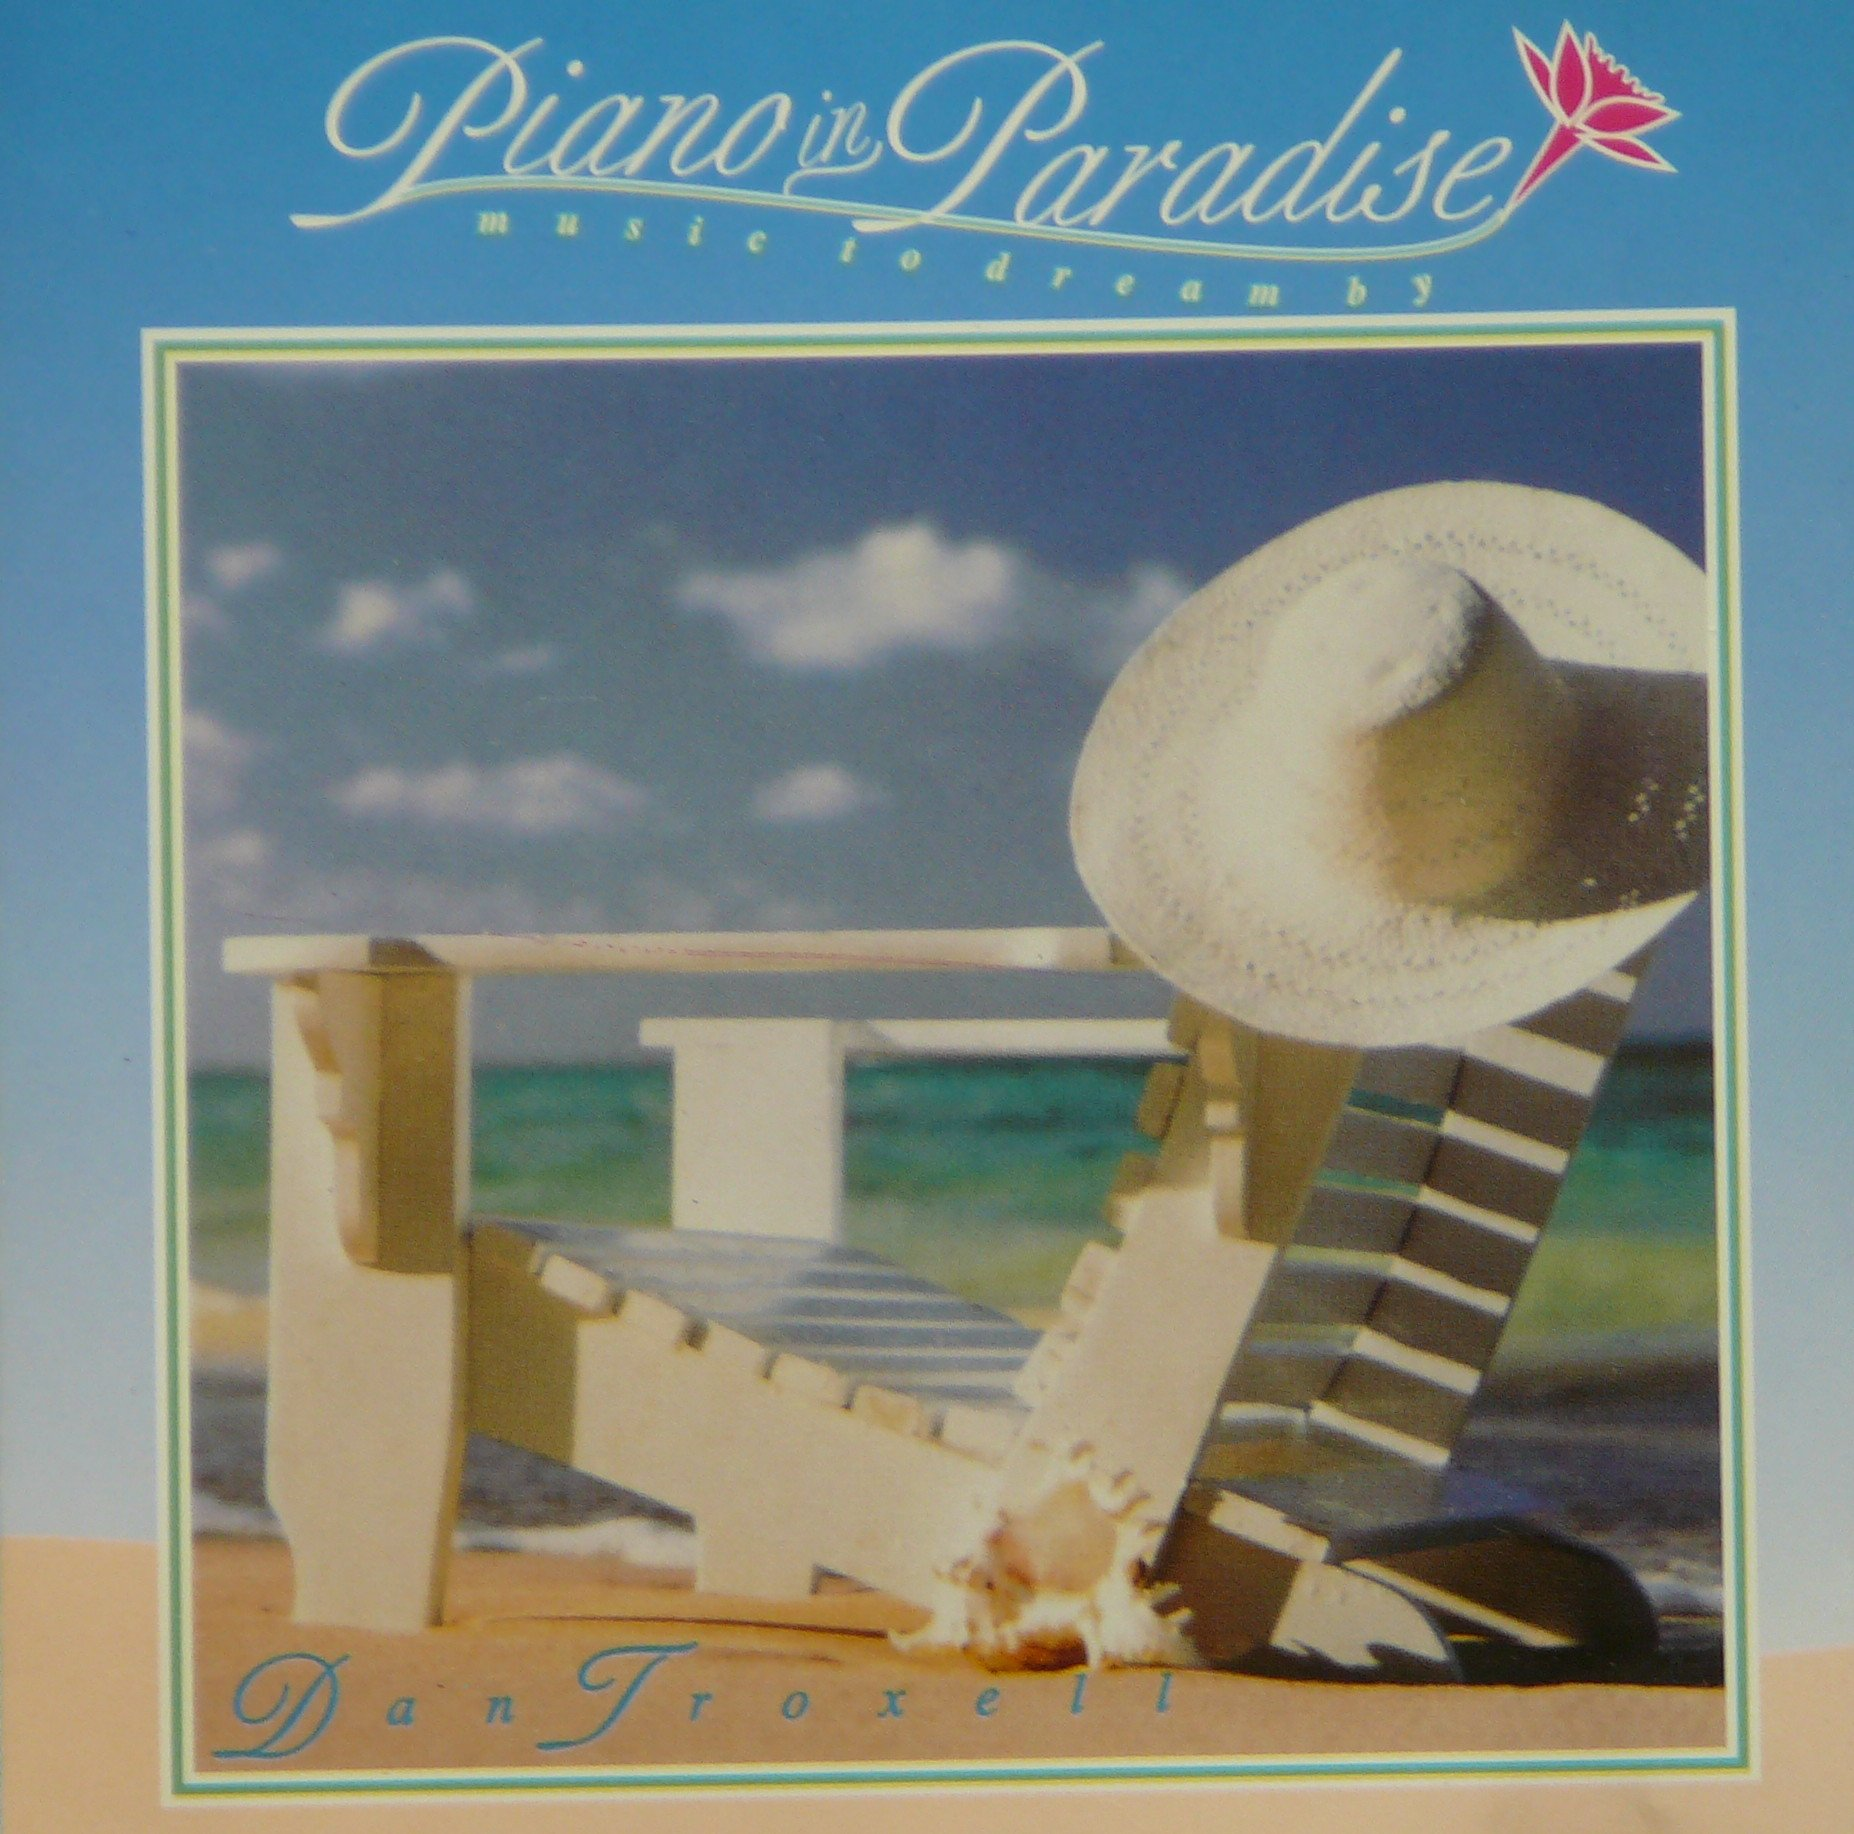 Piano in Paradise